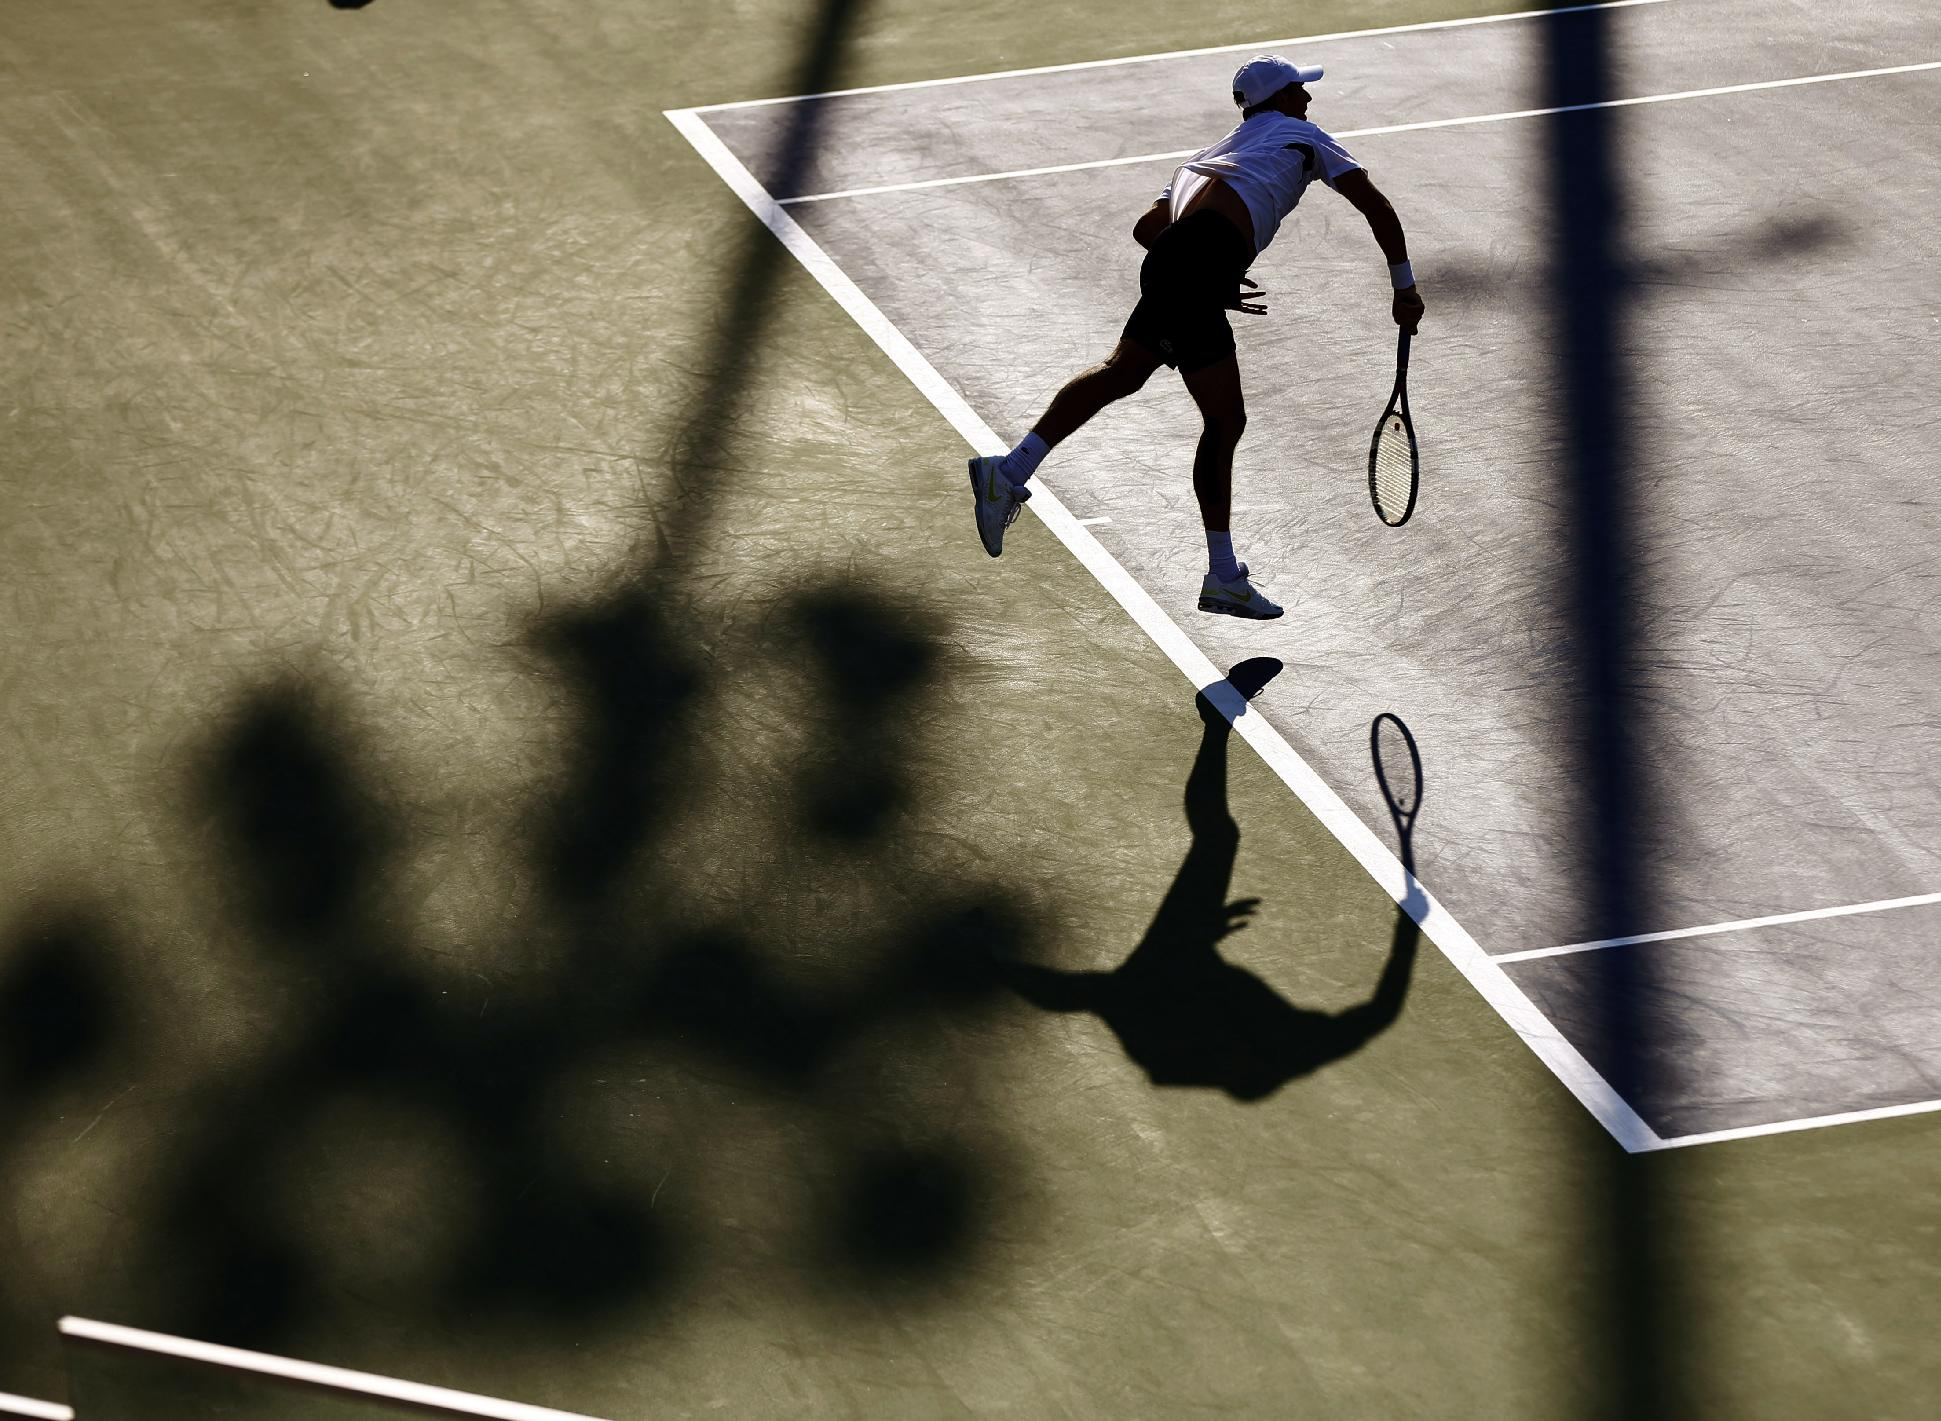 Edouard Roger-Vasselin, of France, serves against Tommy Robredo of Spain during the opening round of the 2014 U.S. Open tennis tournament, Monday, Aug. 25, 2014, in New York